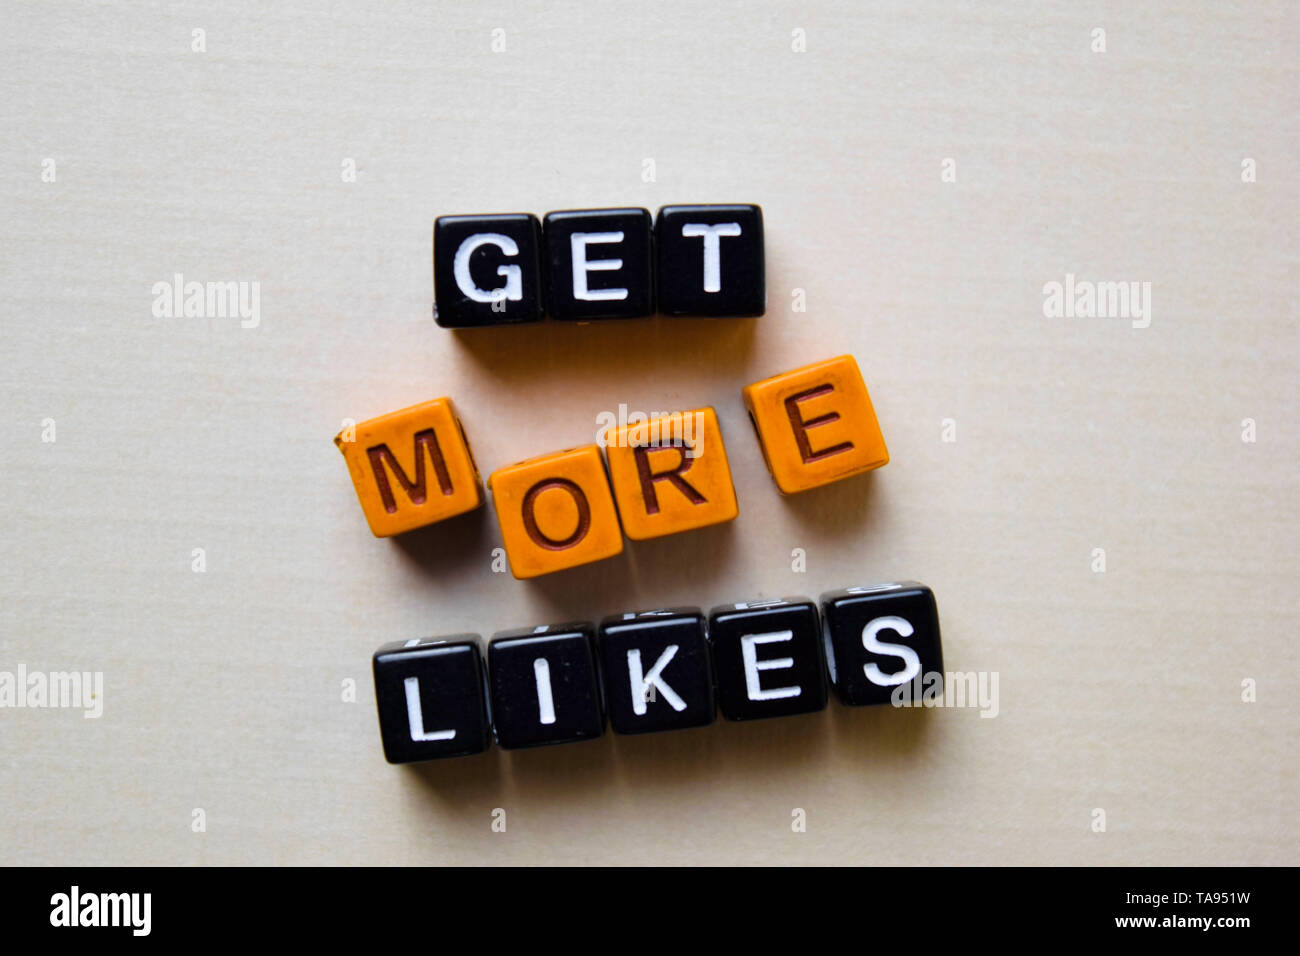 Get More Likes on wooden blocks. Business and inspiration concept - Stock Image